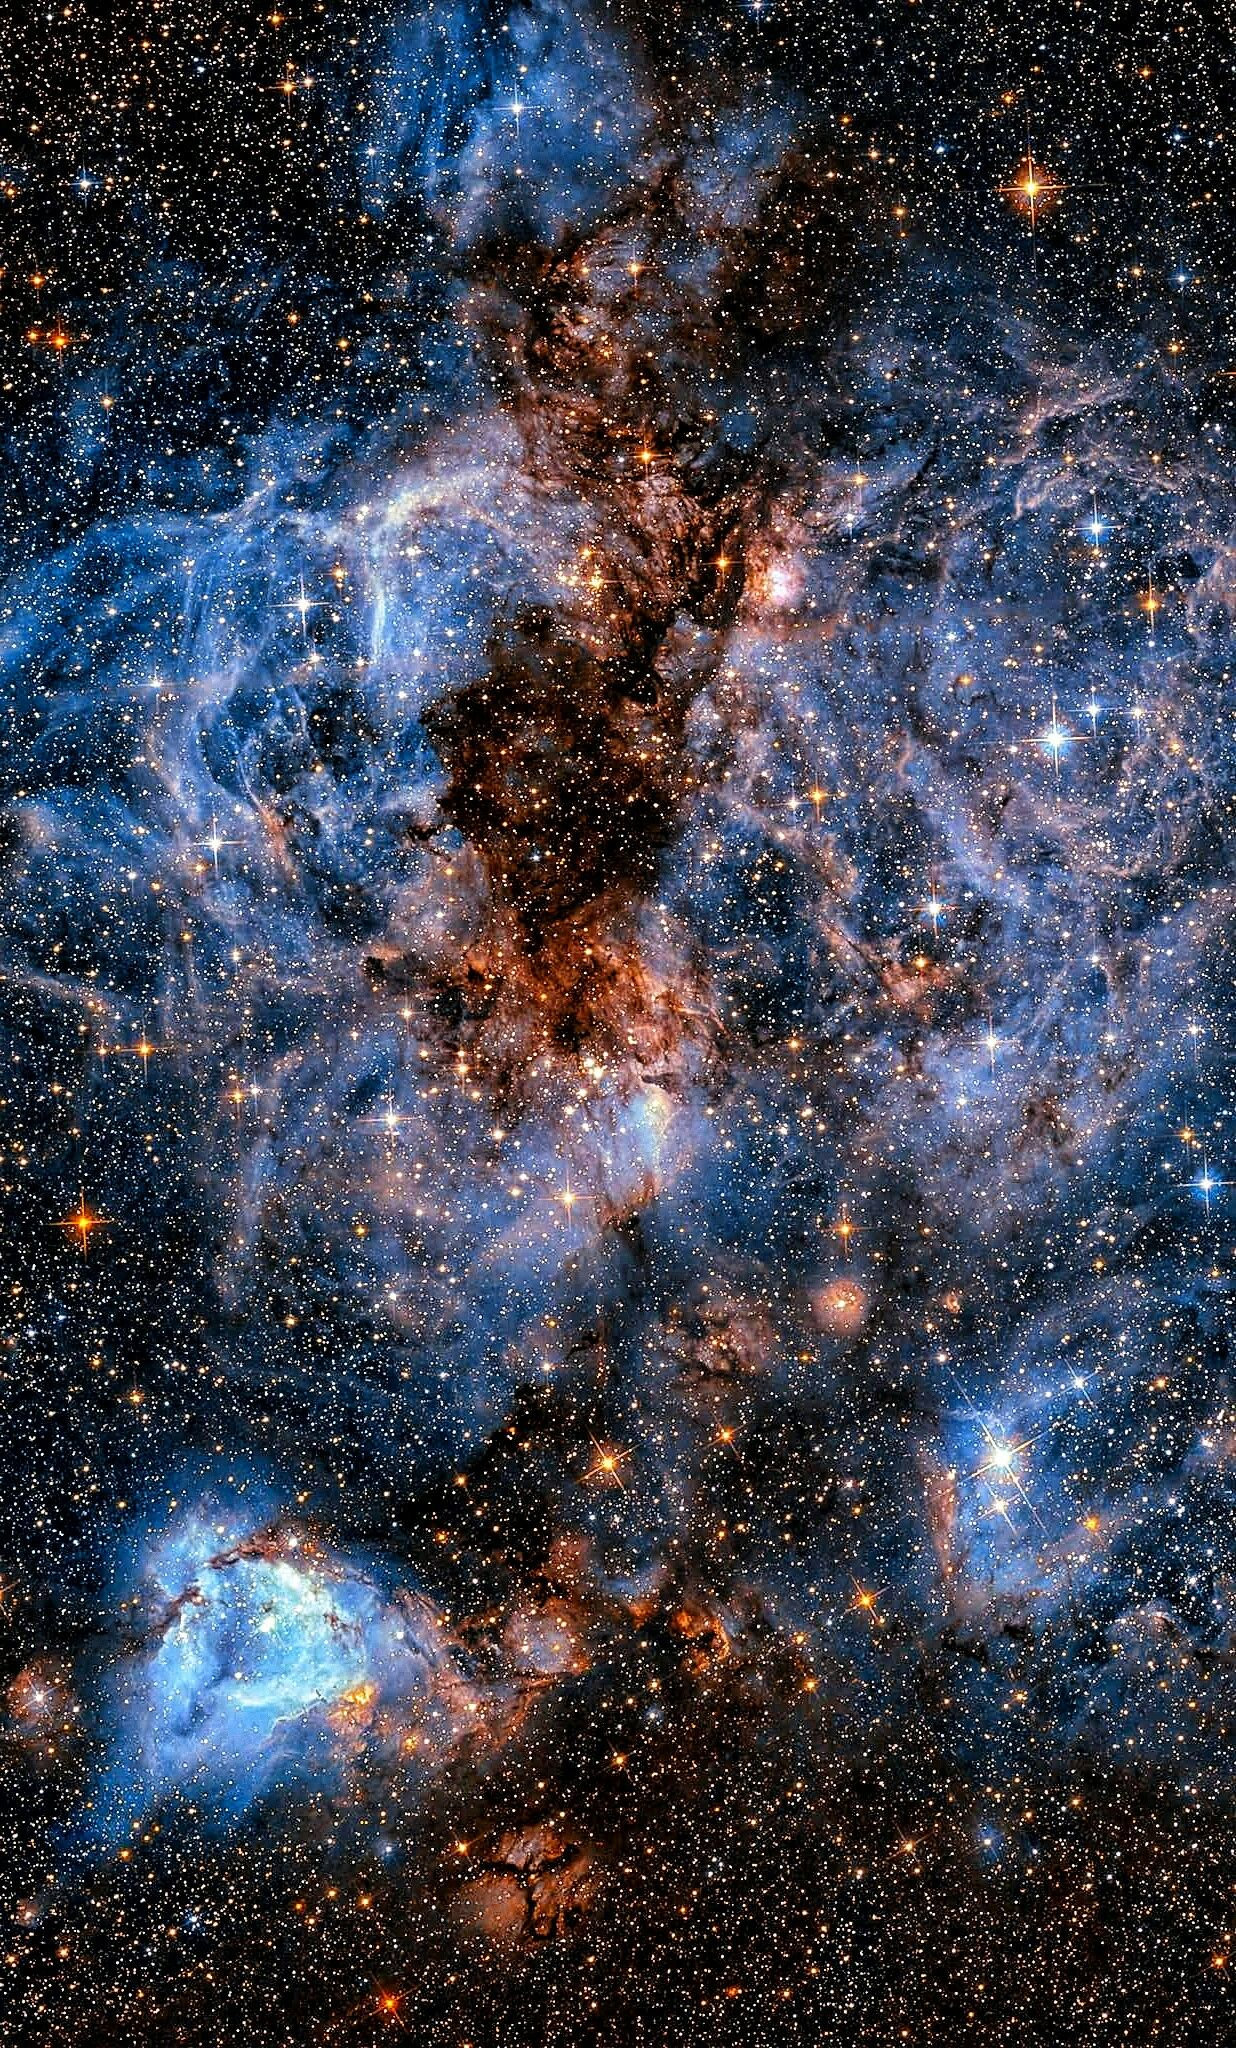 This Shot From The Nasa Esa Hubble Space Telescope Shows A